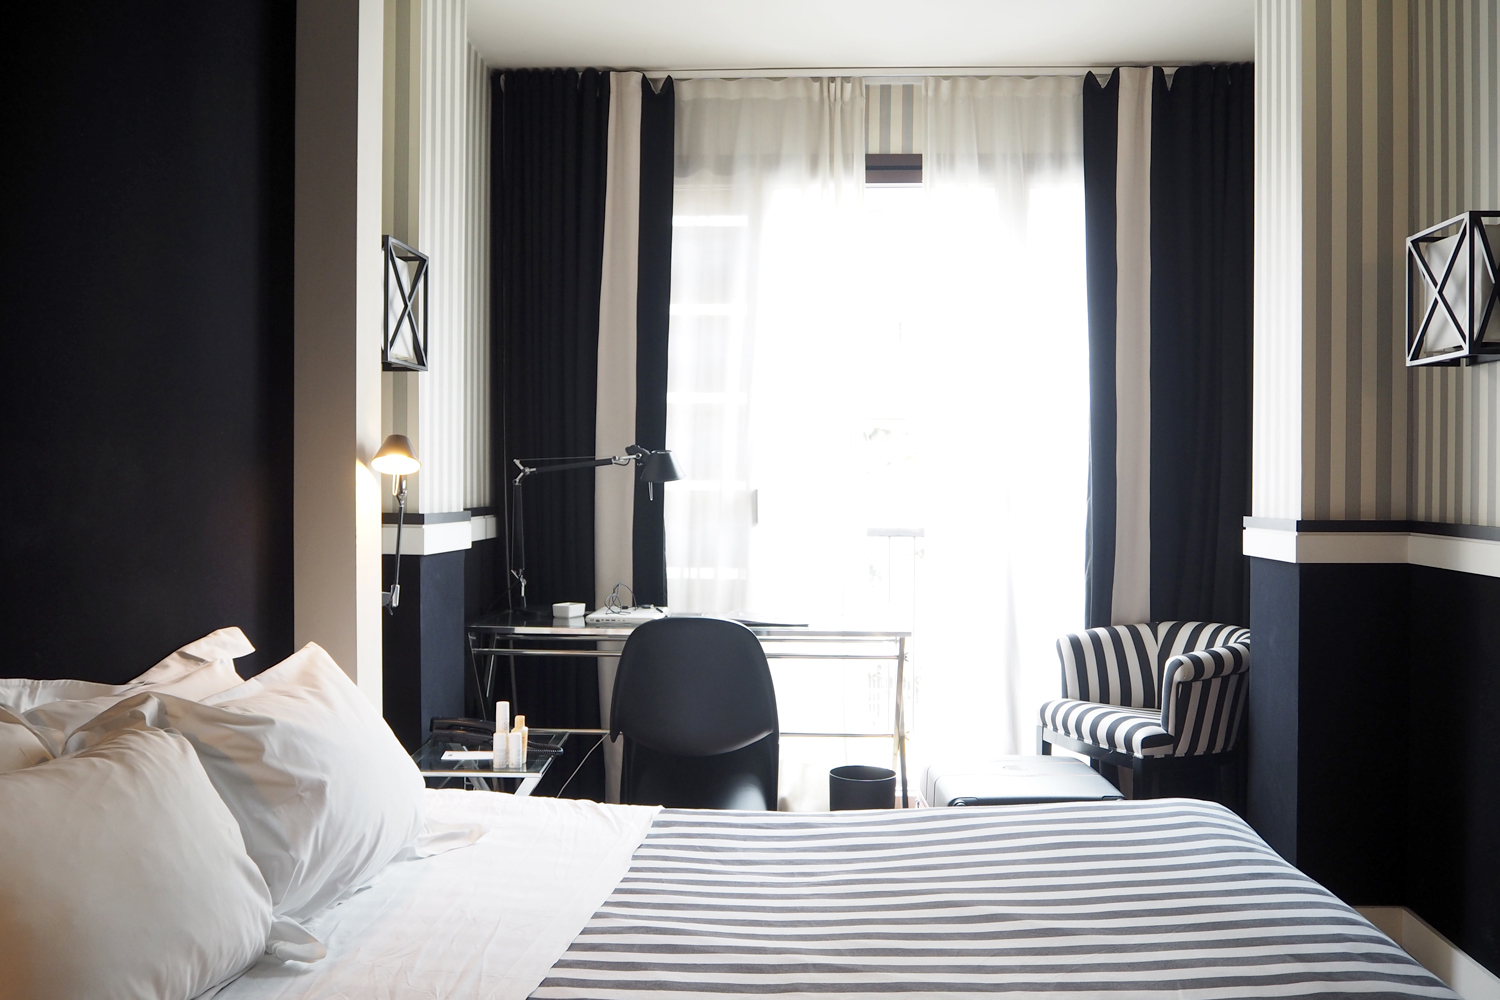 Char and the city - Hotel recommendation in Barcelona: Hotel Europark - stylish black & white hotelrooms - rooftop terrace, pool and bar with a view of Barcelona - great location!